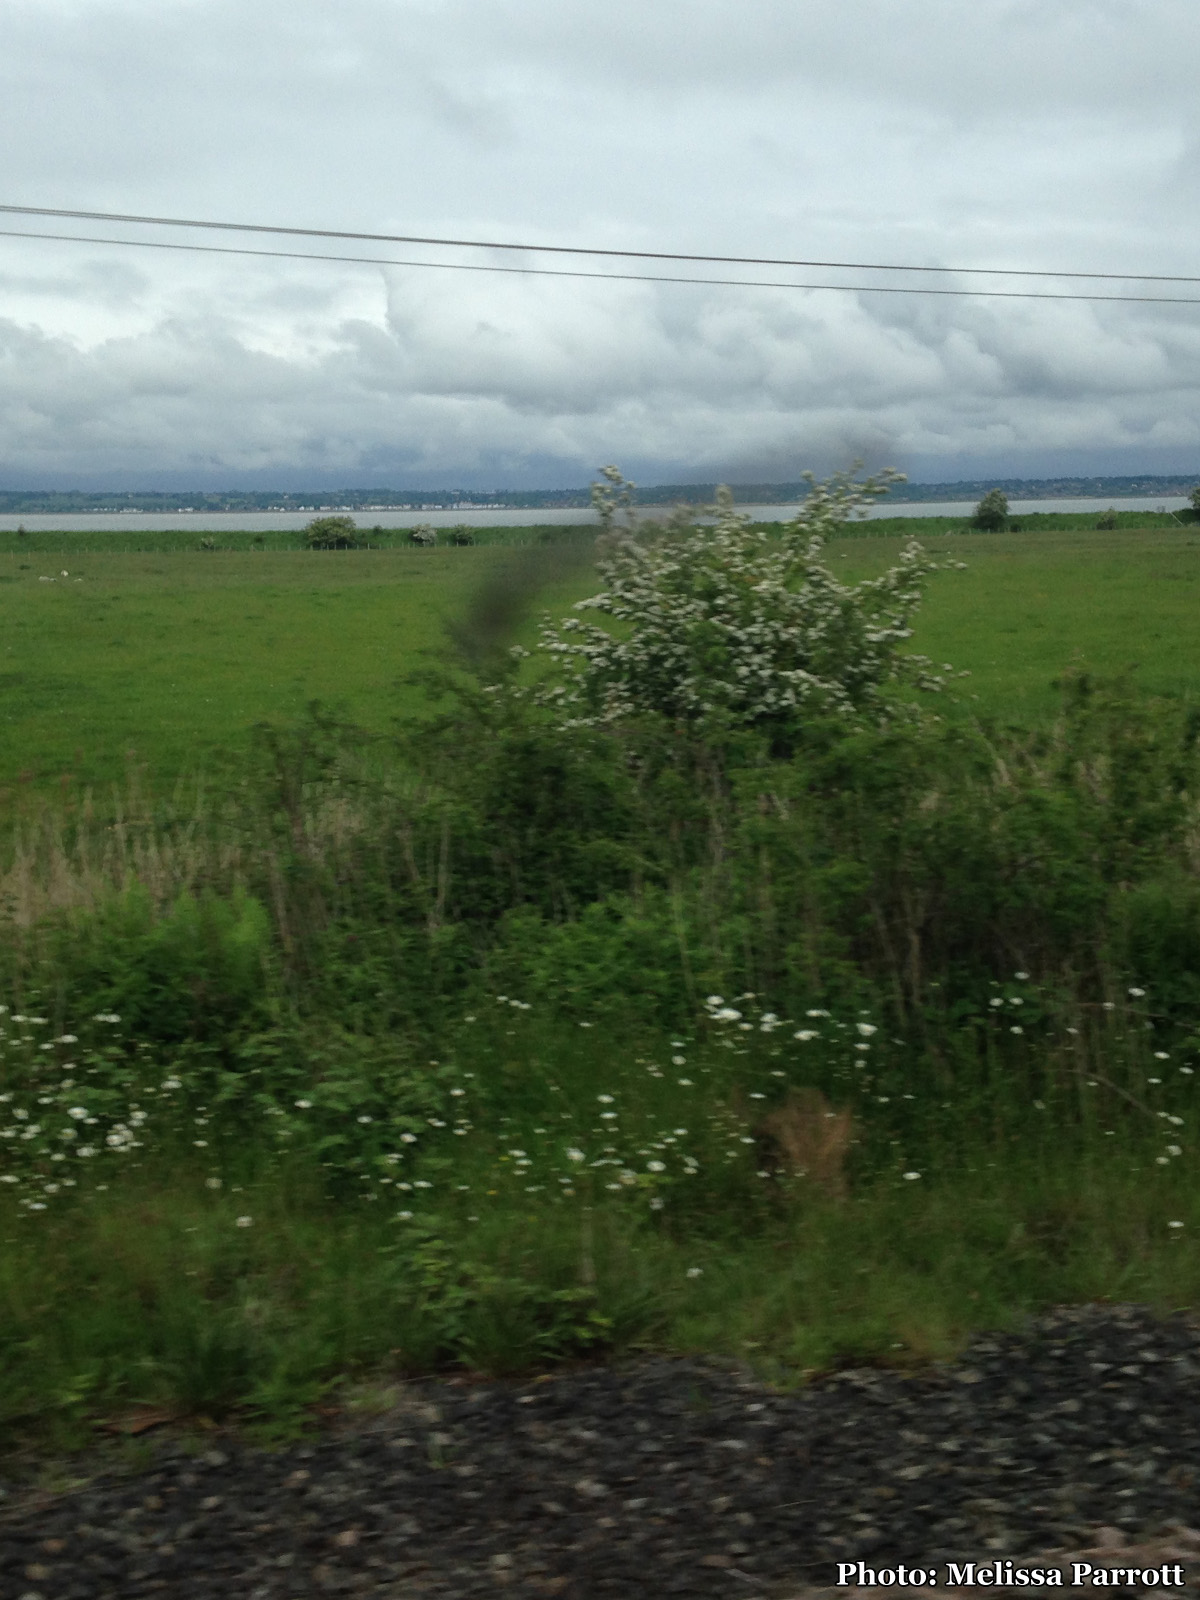 Here in North Wales, the train passengers primarily spoke Welsh, both young and old, families and young adults. It was nice to hear the old language. The tracks now ranparallel to the Irish Sea and the River Dee, with water on one sideandmountains starting to loom on the other.